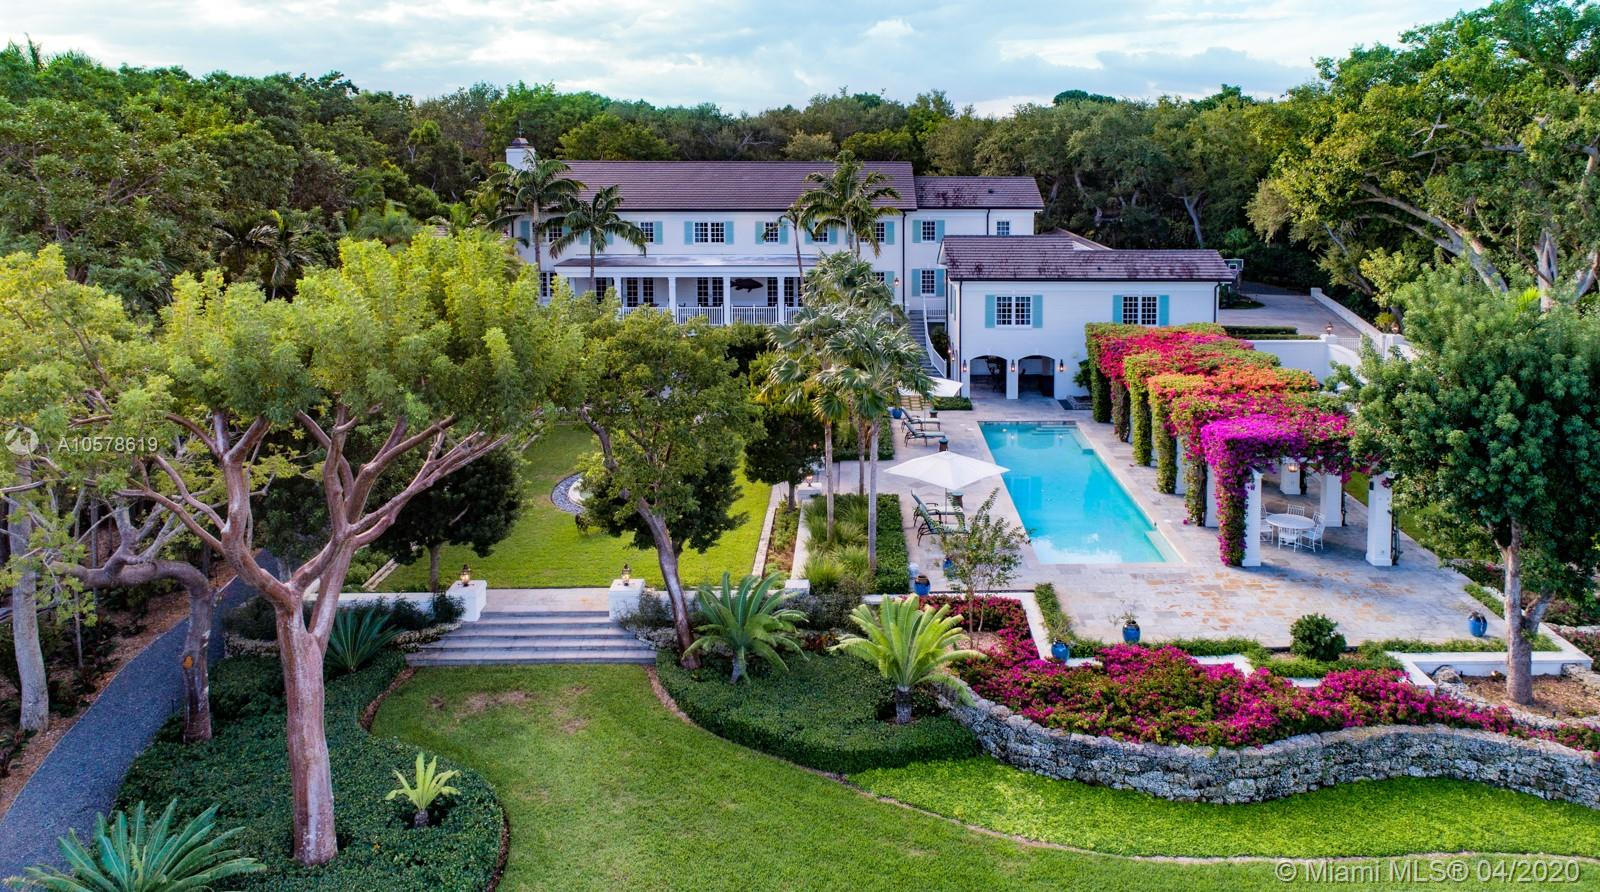 8585 Old Cutler Rd, Coral Gables, Florida 33143, 7 Bedrooms Bedrooms, ,9 BathroomsBathrooms,Residential,For Sale,8585 Old Cutler Rd,A10578619